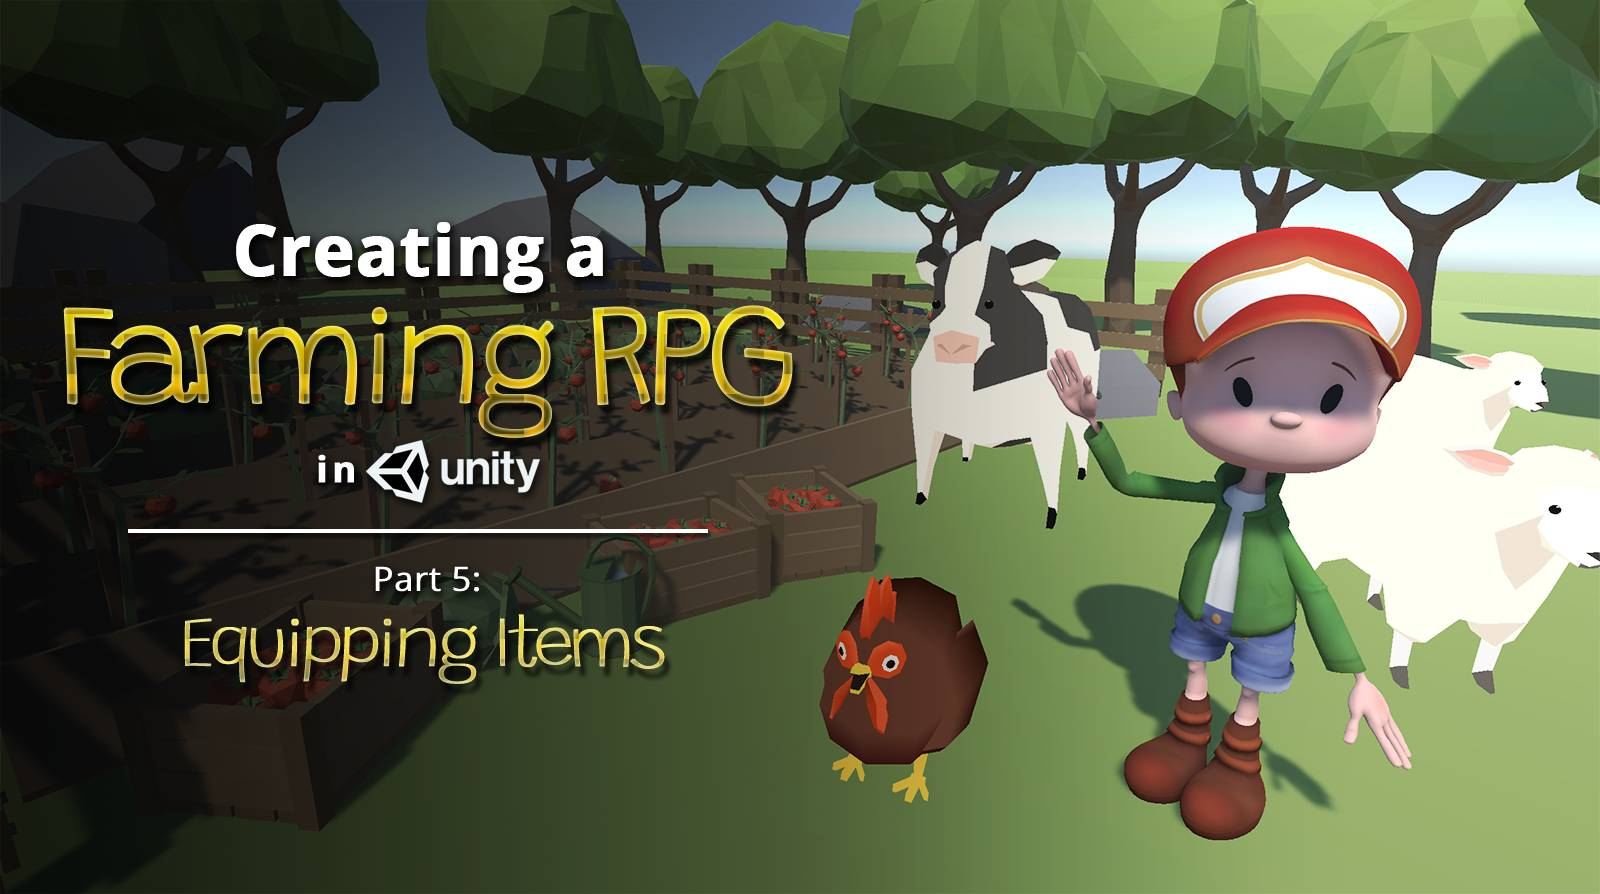 Creating a Farming RPG in Unity - Part 5: Equipping Items